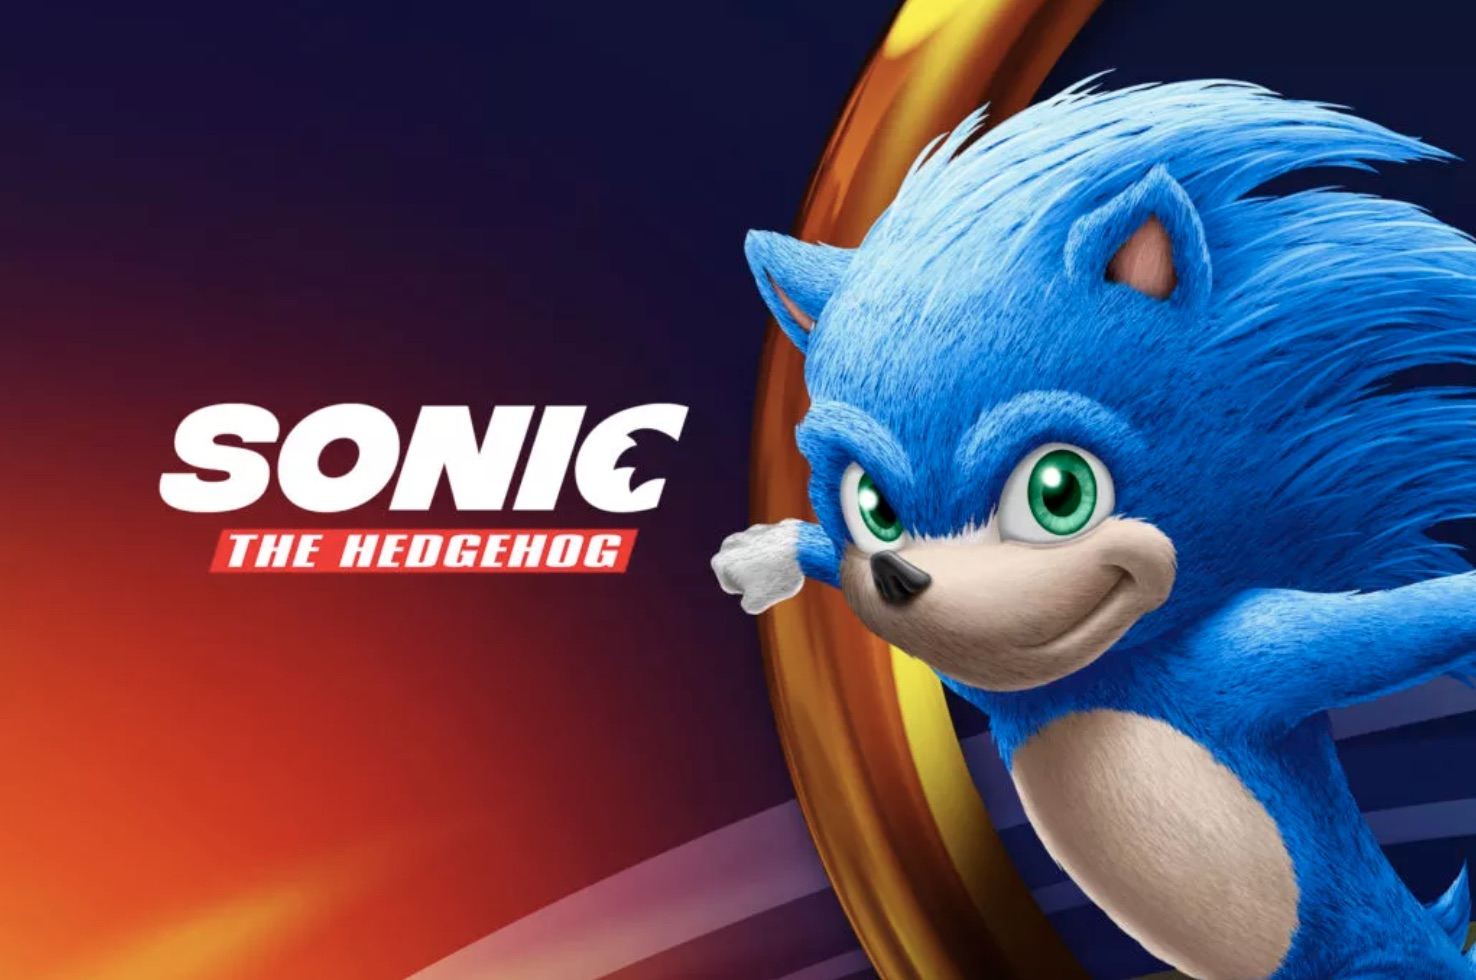 sonic the hedgehog movie 2